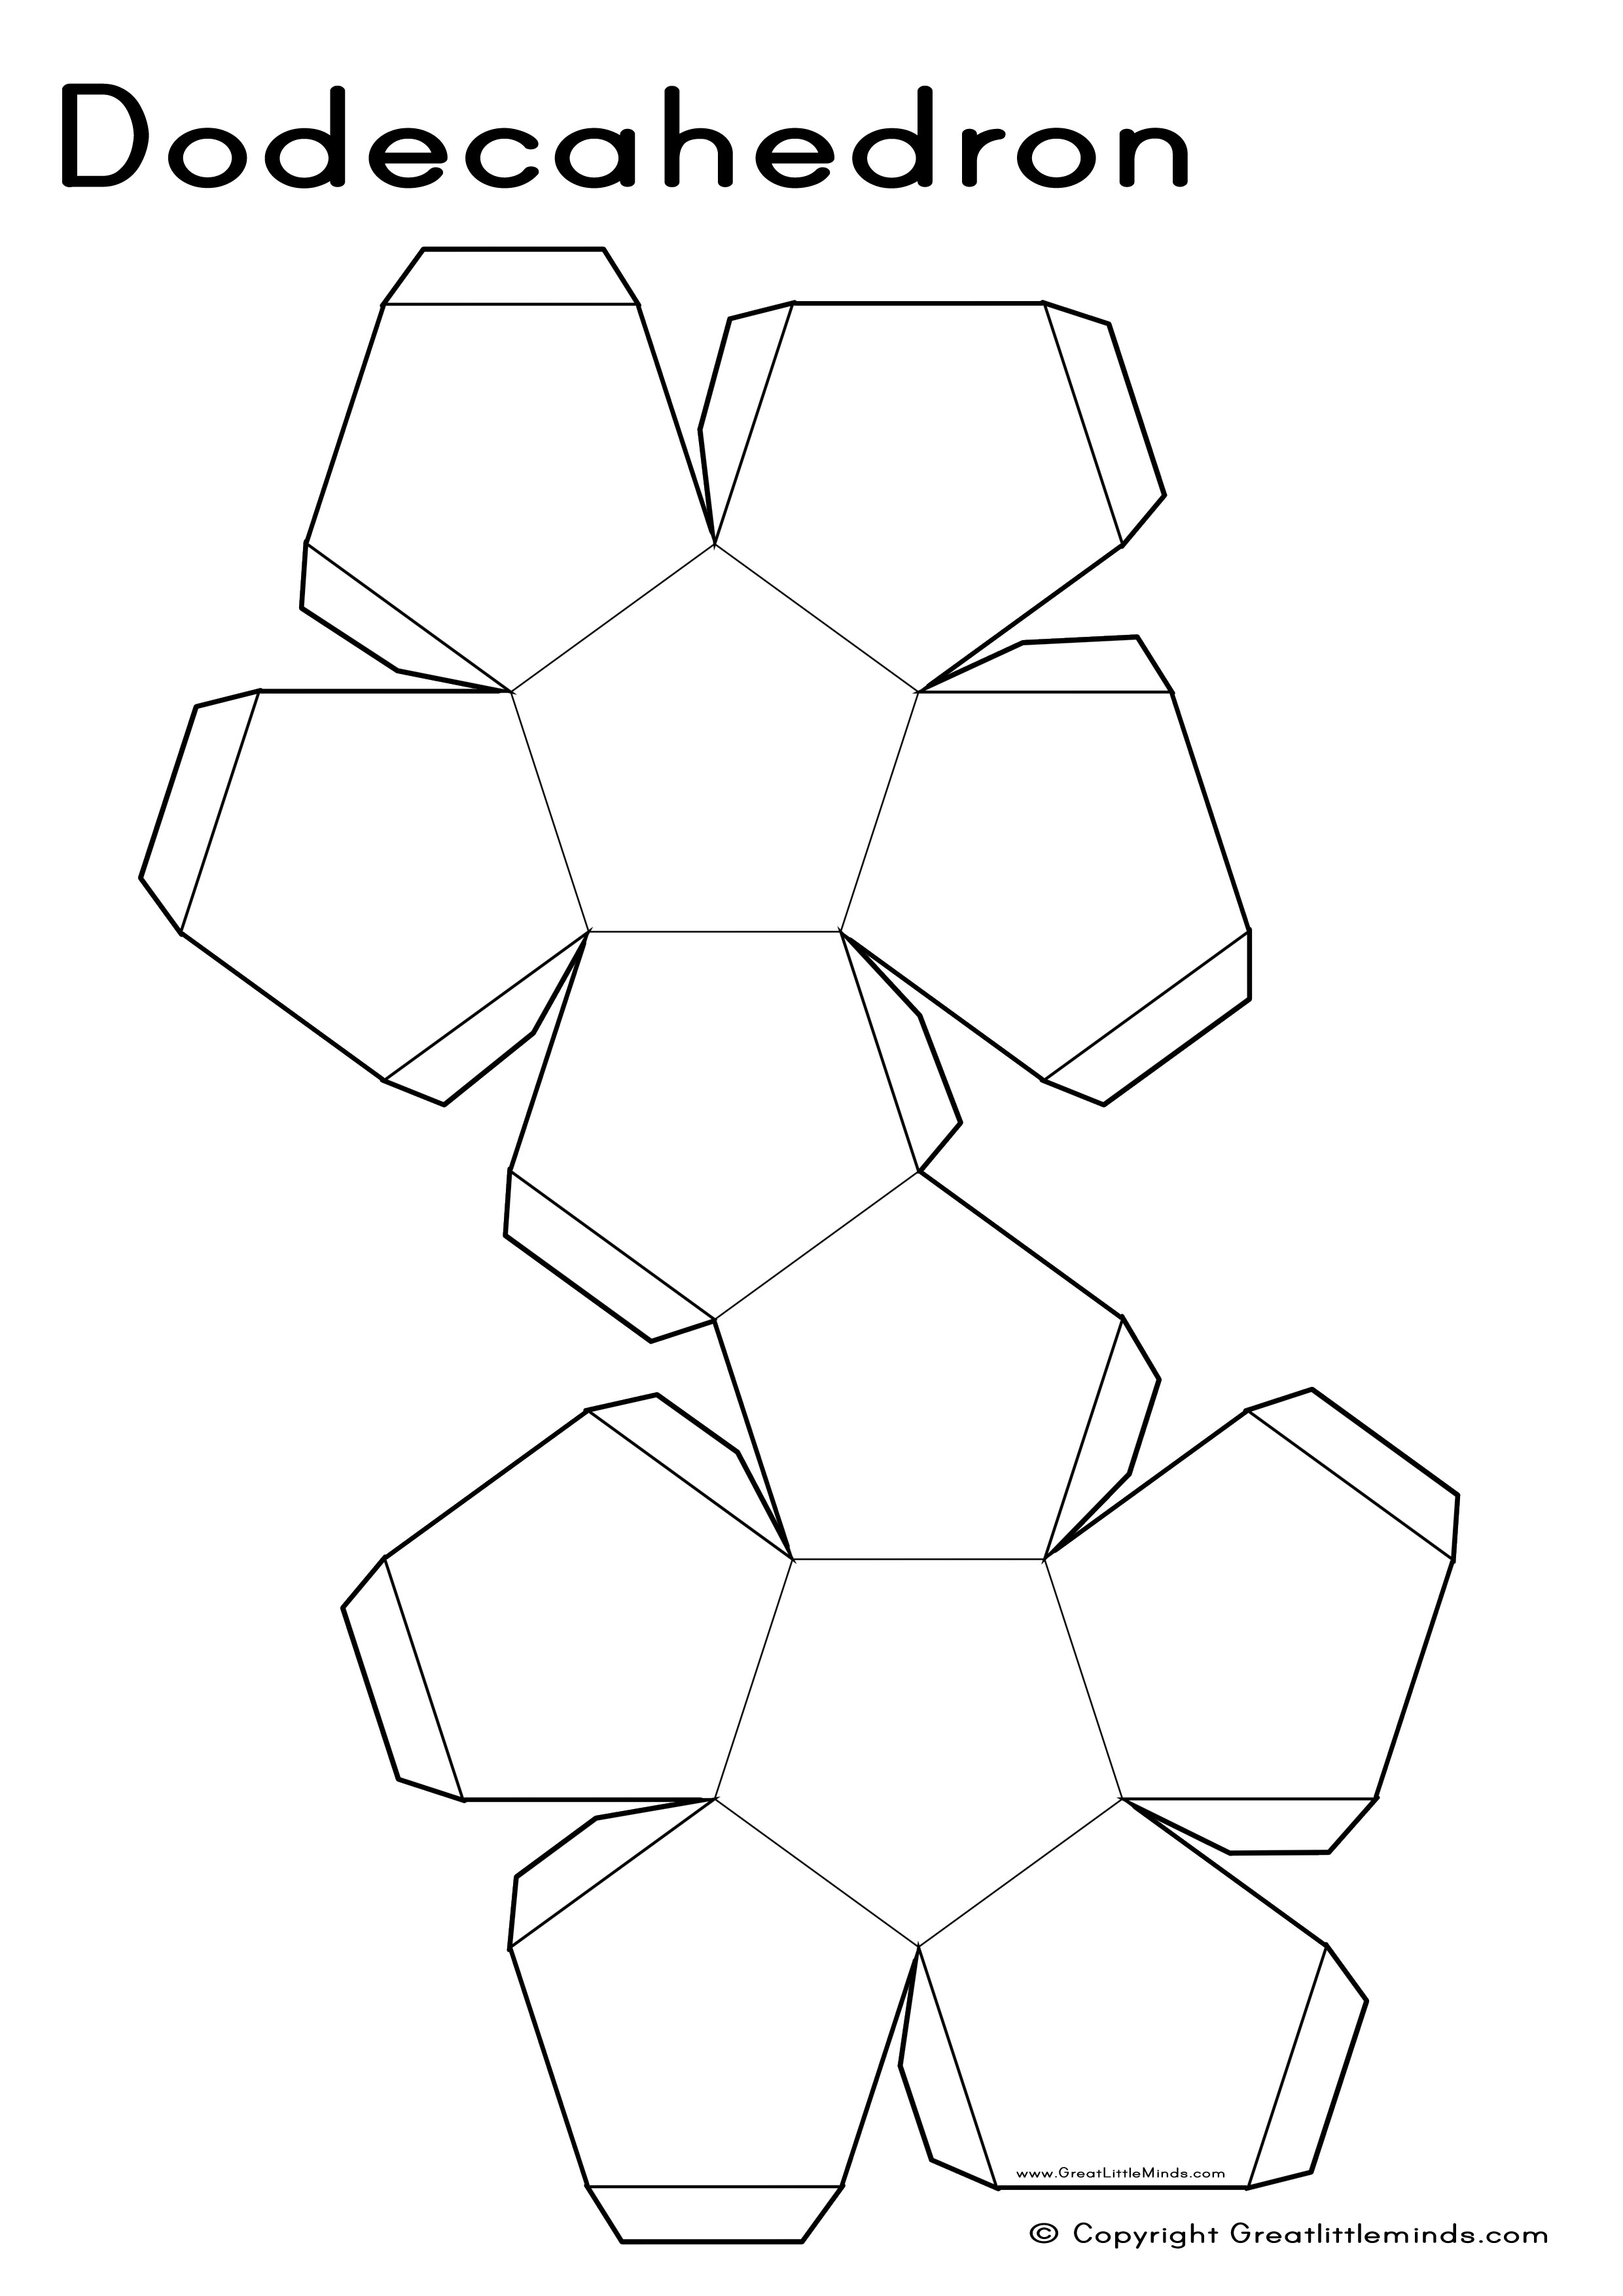 Properties Of A Dodecagon Images